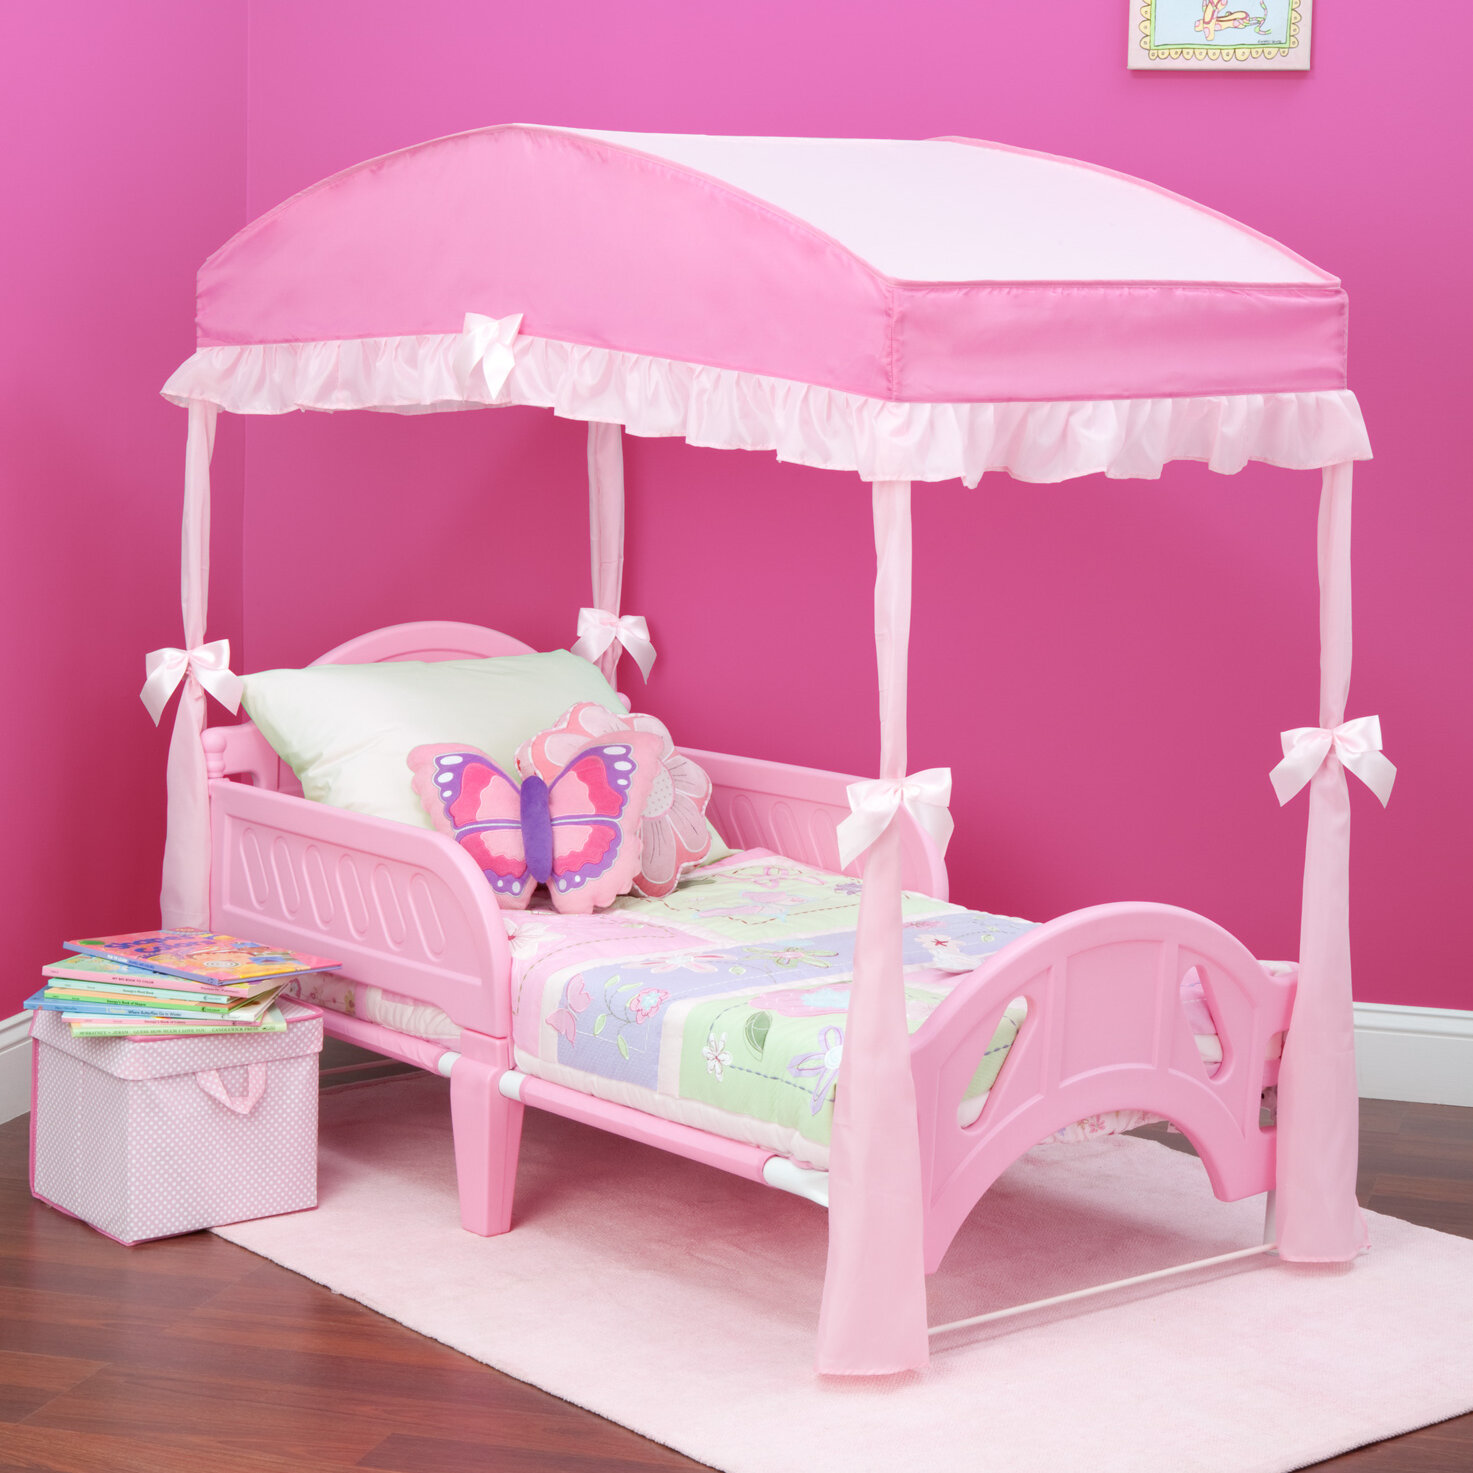 Beds For Girls Kids Cheaper Than Retail Price Buy Clothing Accessories And Lifestyle Products For Women Men